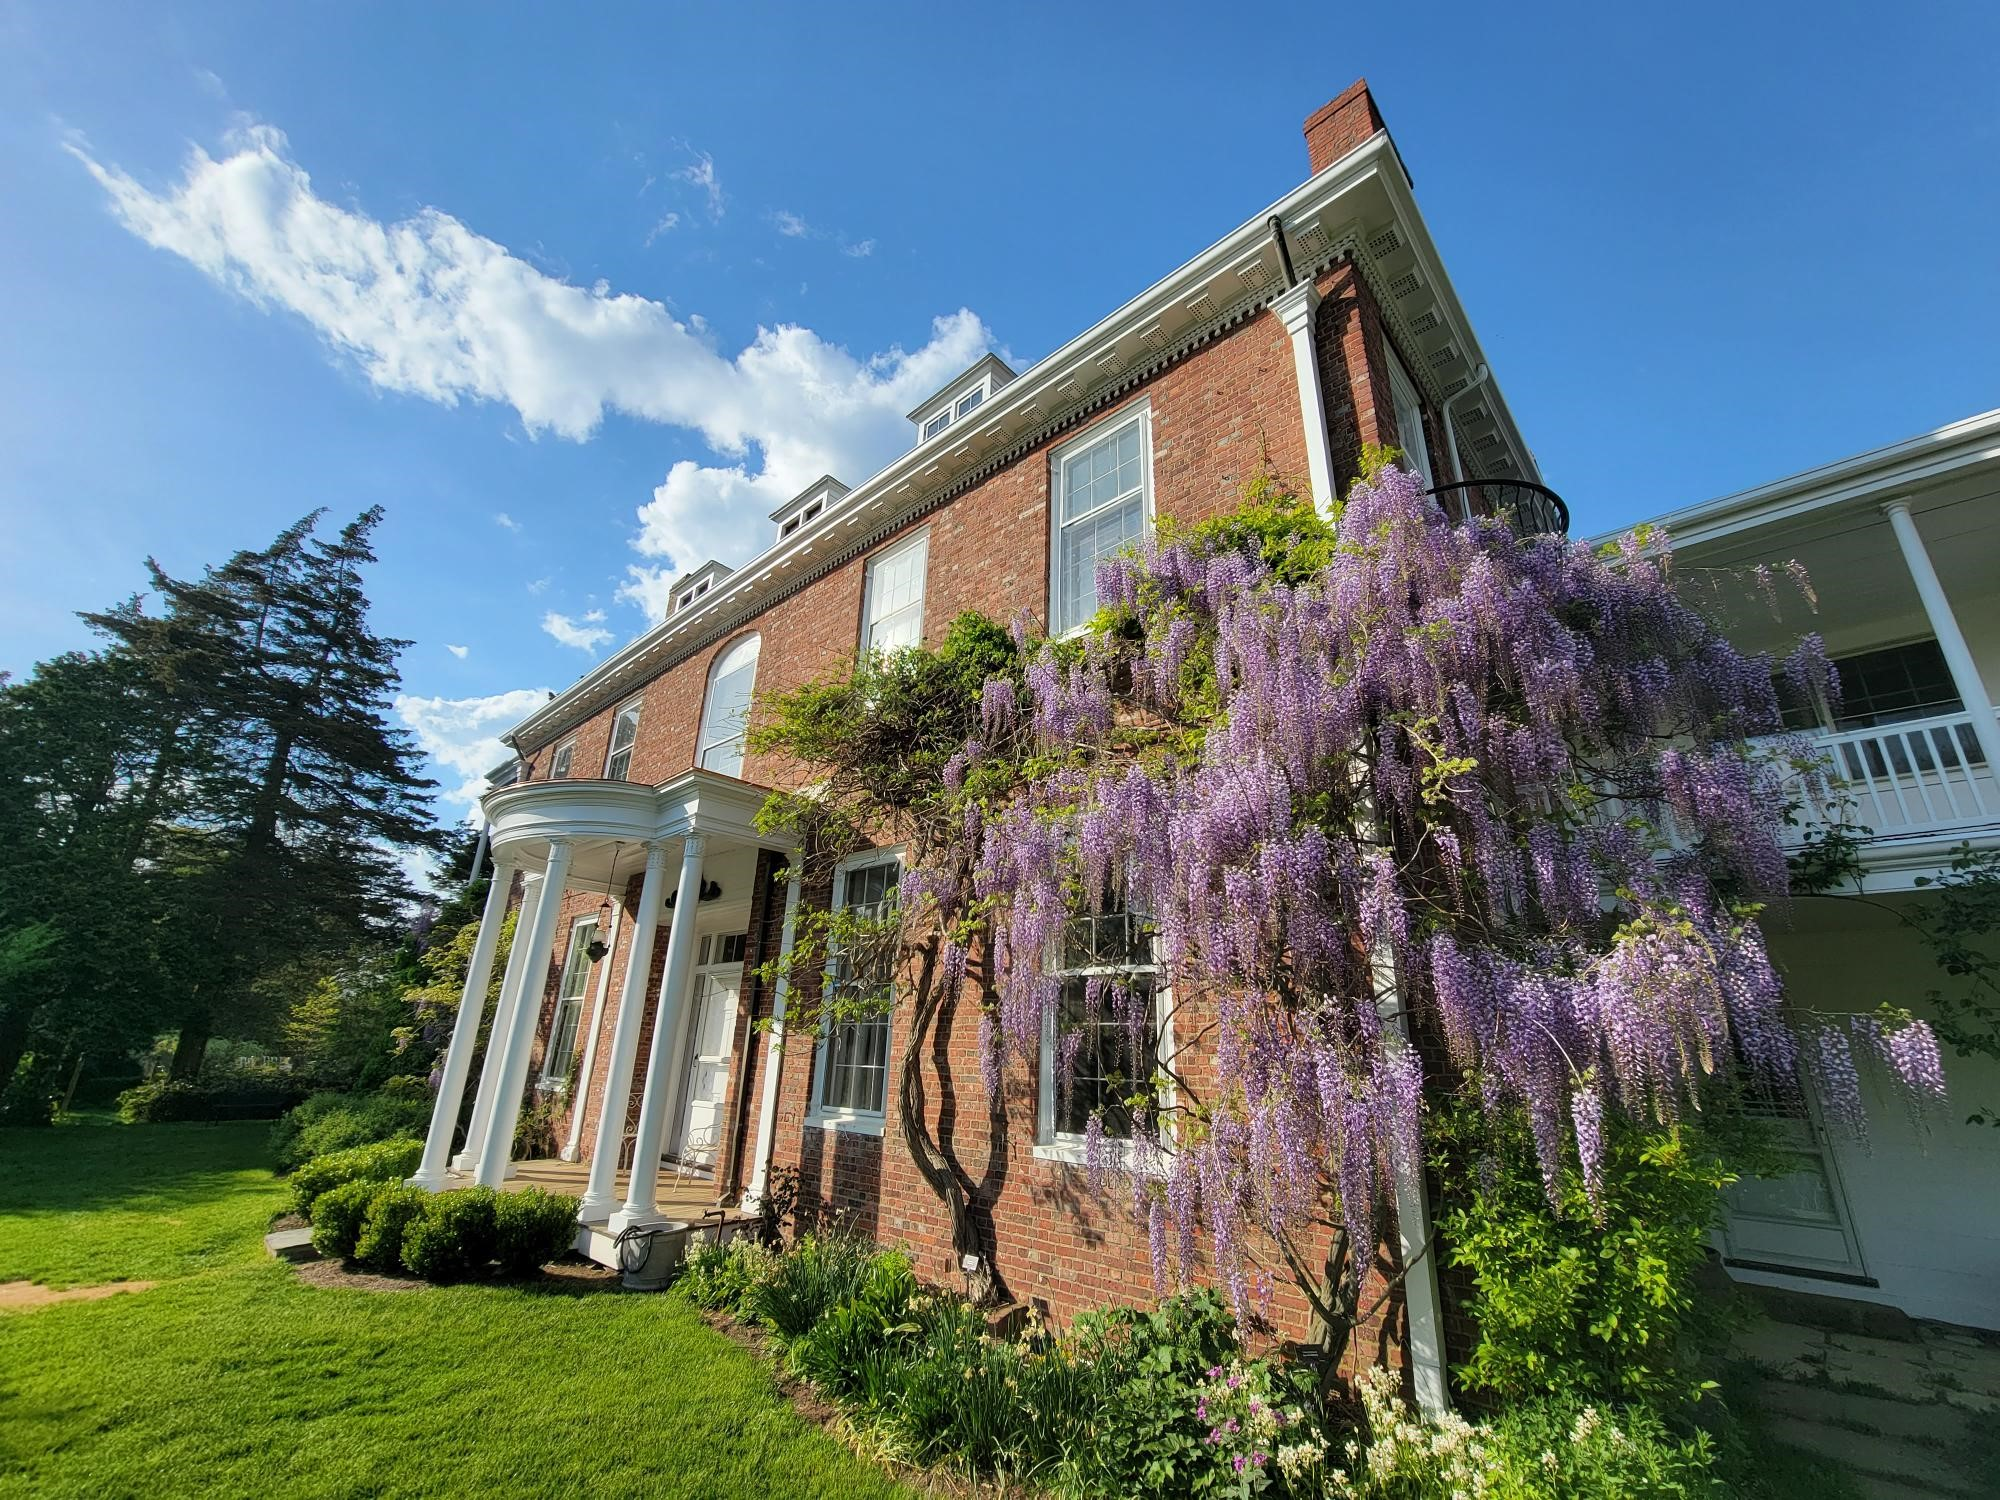 Long Hill historic house with wisteria